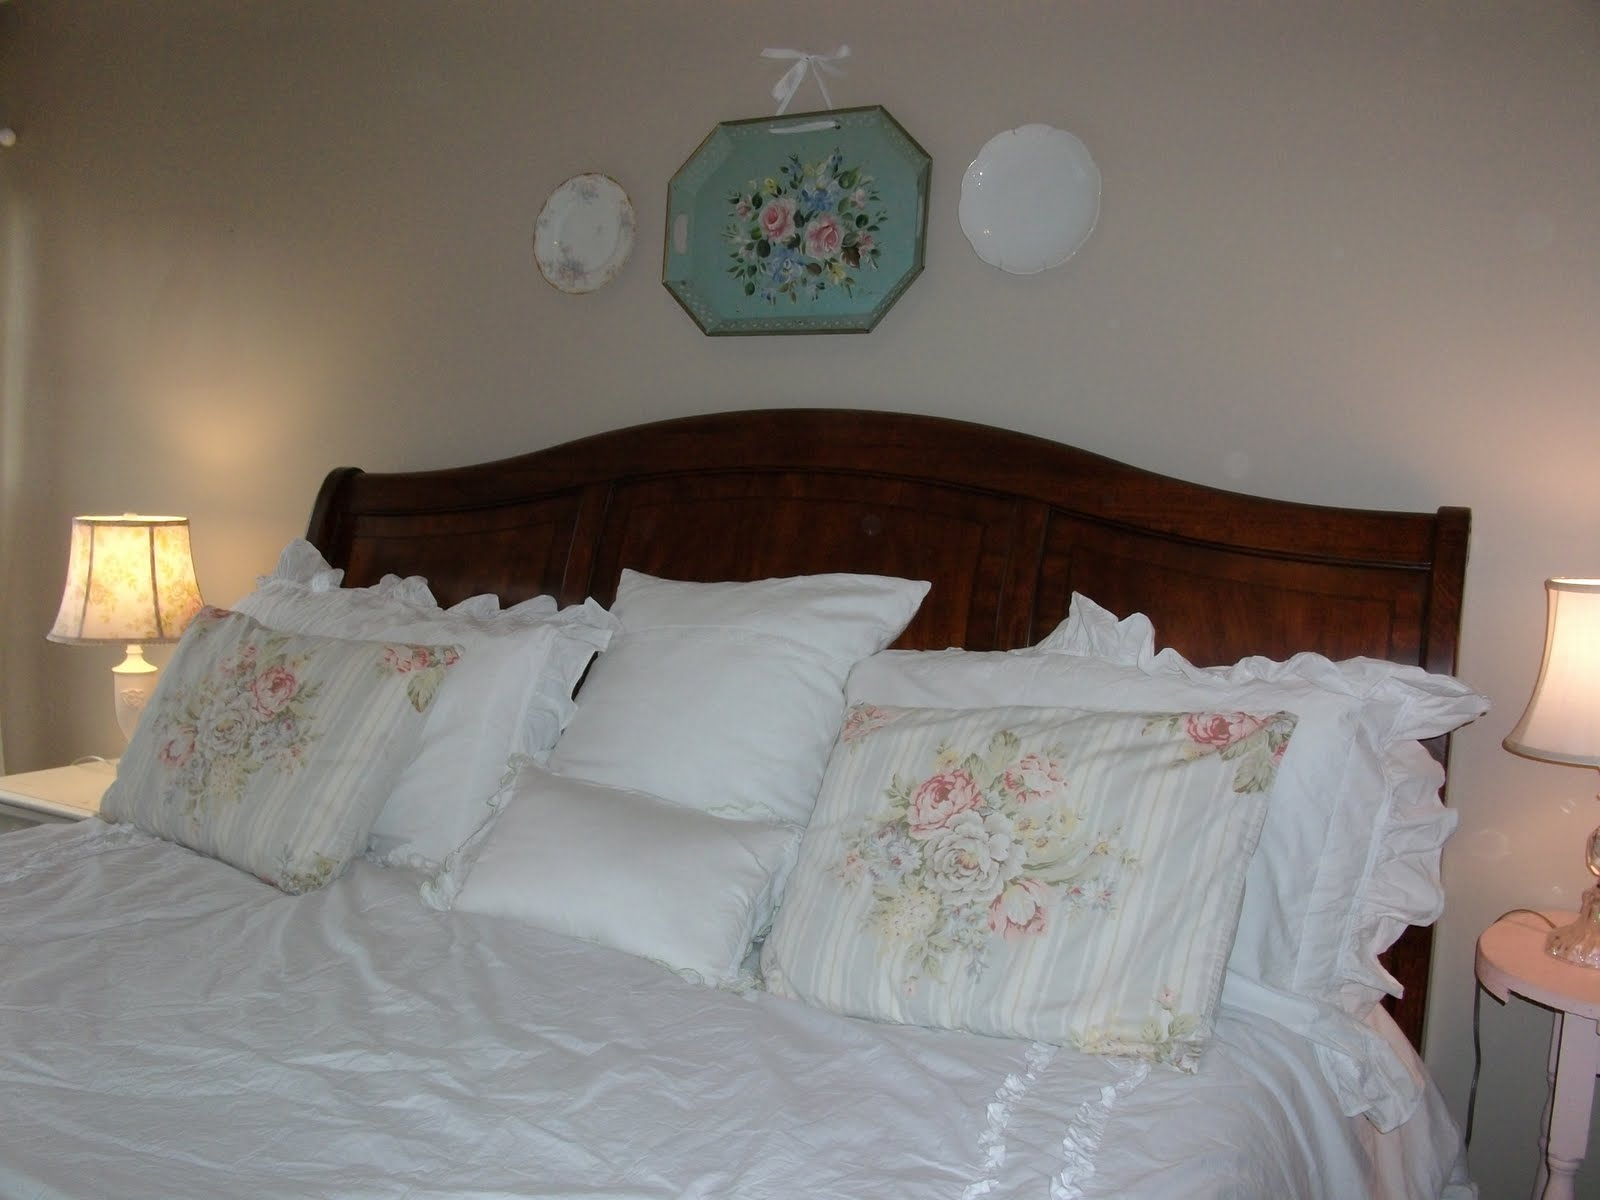 Bedroom Pics Hello Everyone I Purchased Some New Simply Shabby Chic